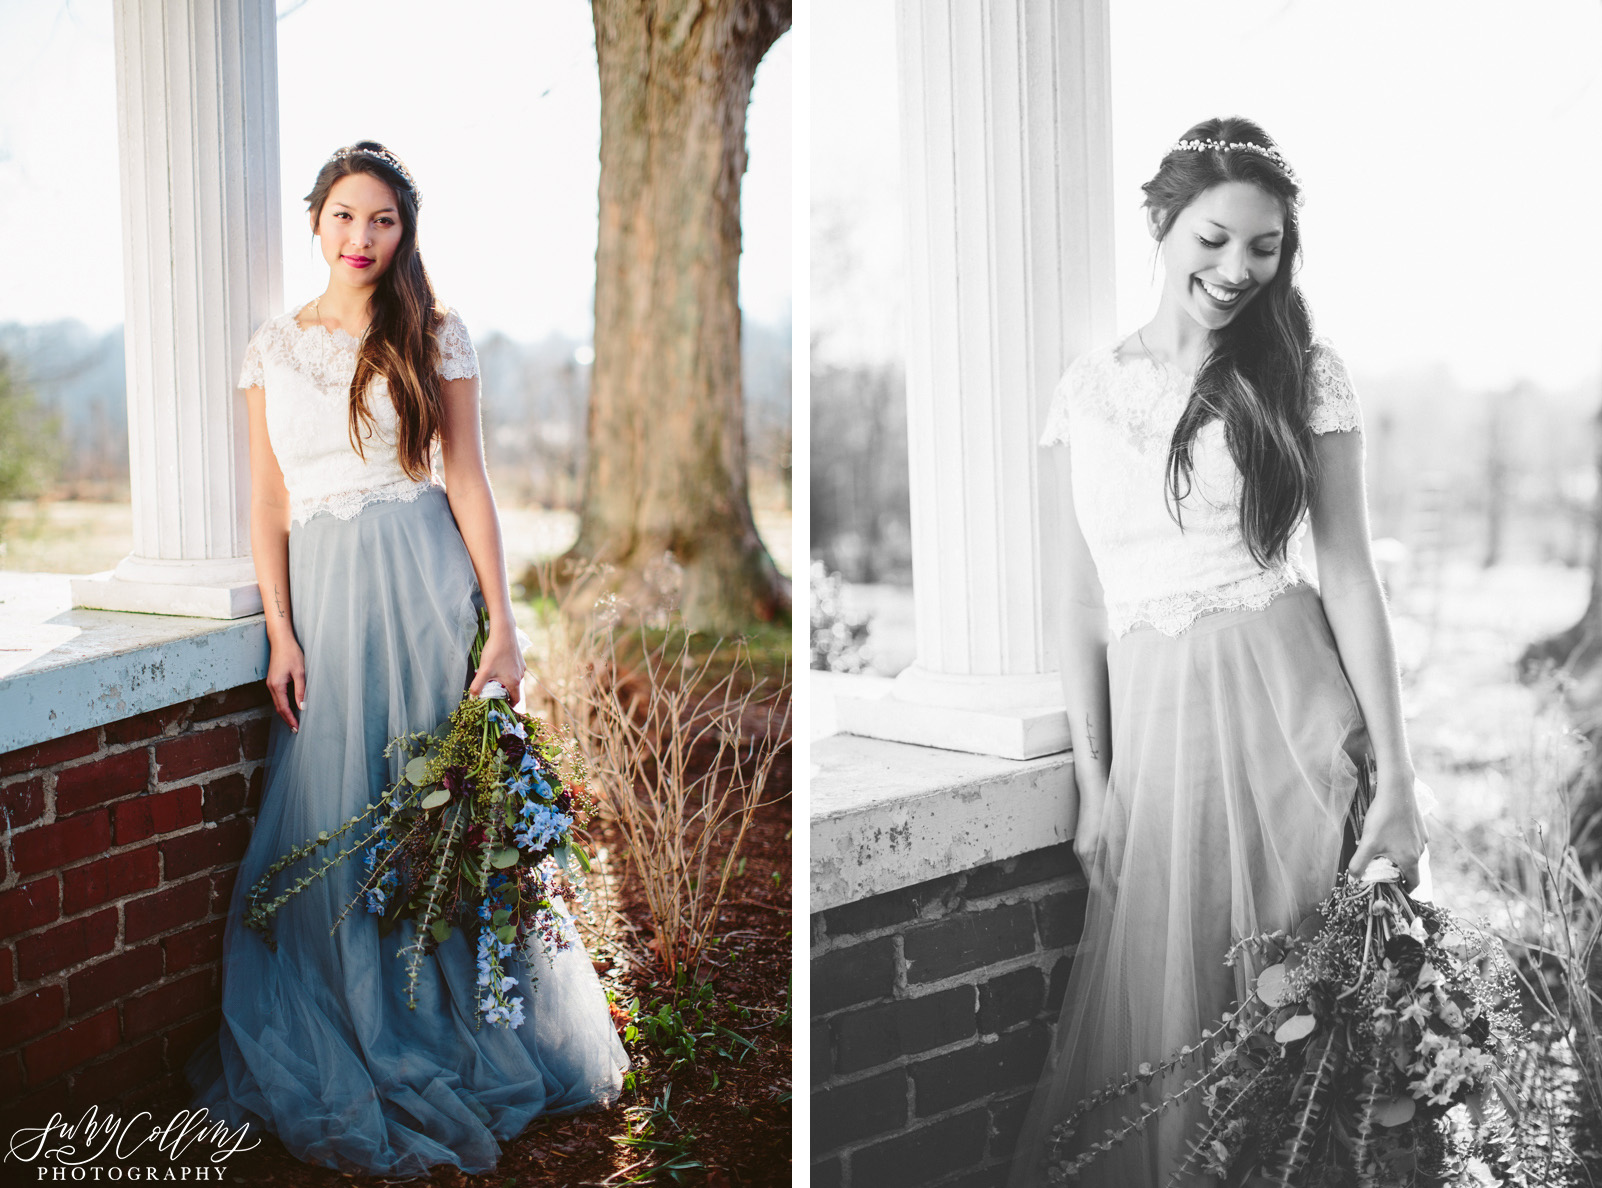 poses, outdoor, styled shoot, intimate, florals, vibrant, dark and moody, sunset, love, details, passion, Knoxville, tennessee, vibrant, colorful, editorial, publication, fun, unique, black and white